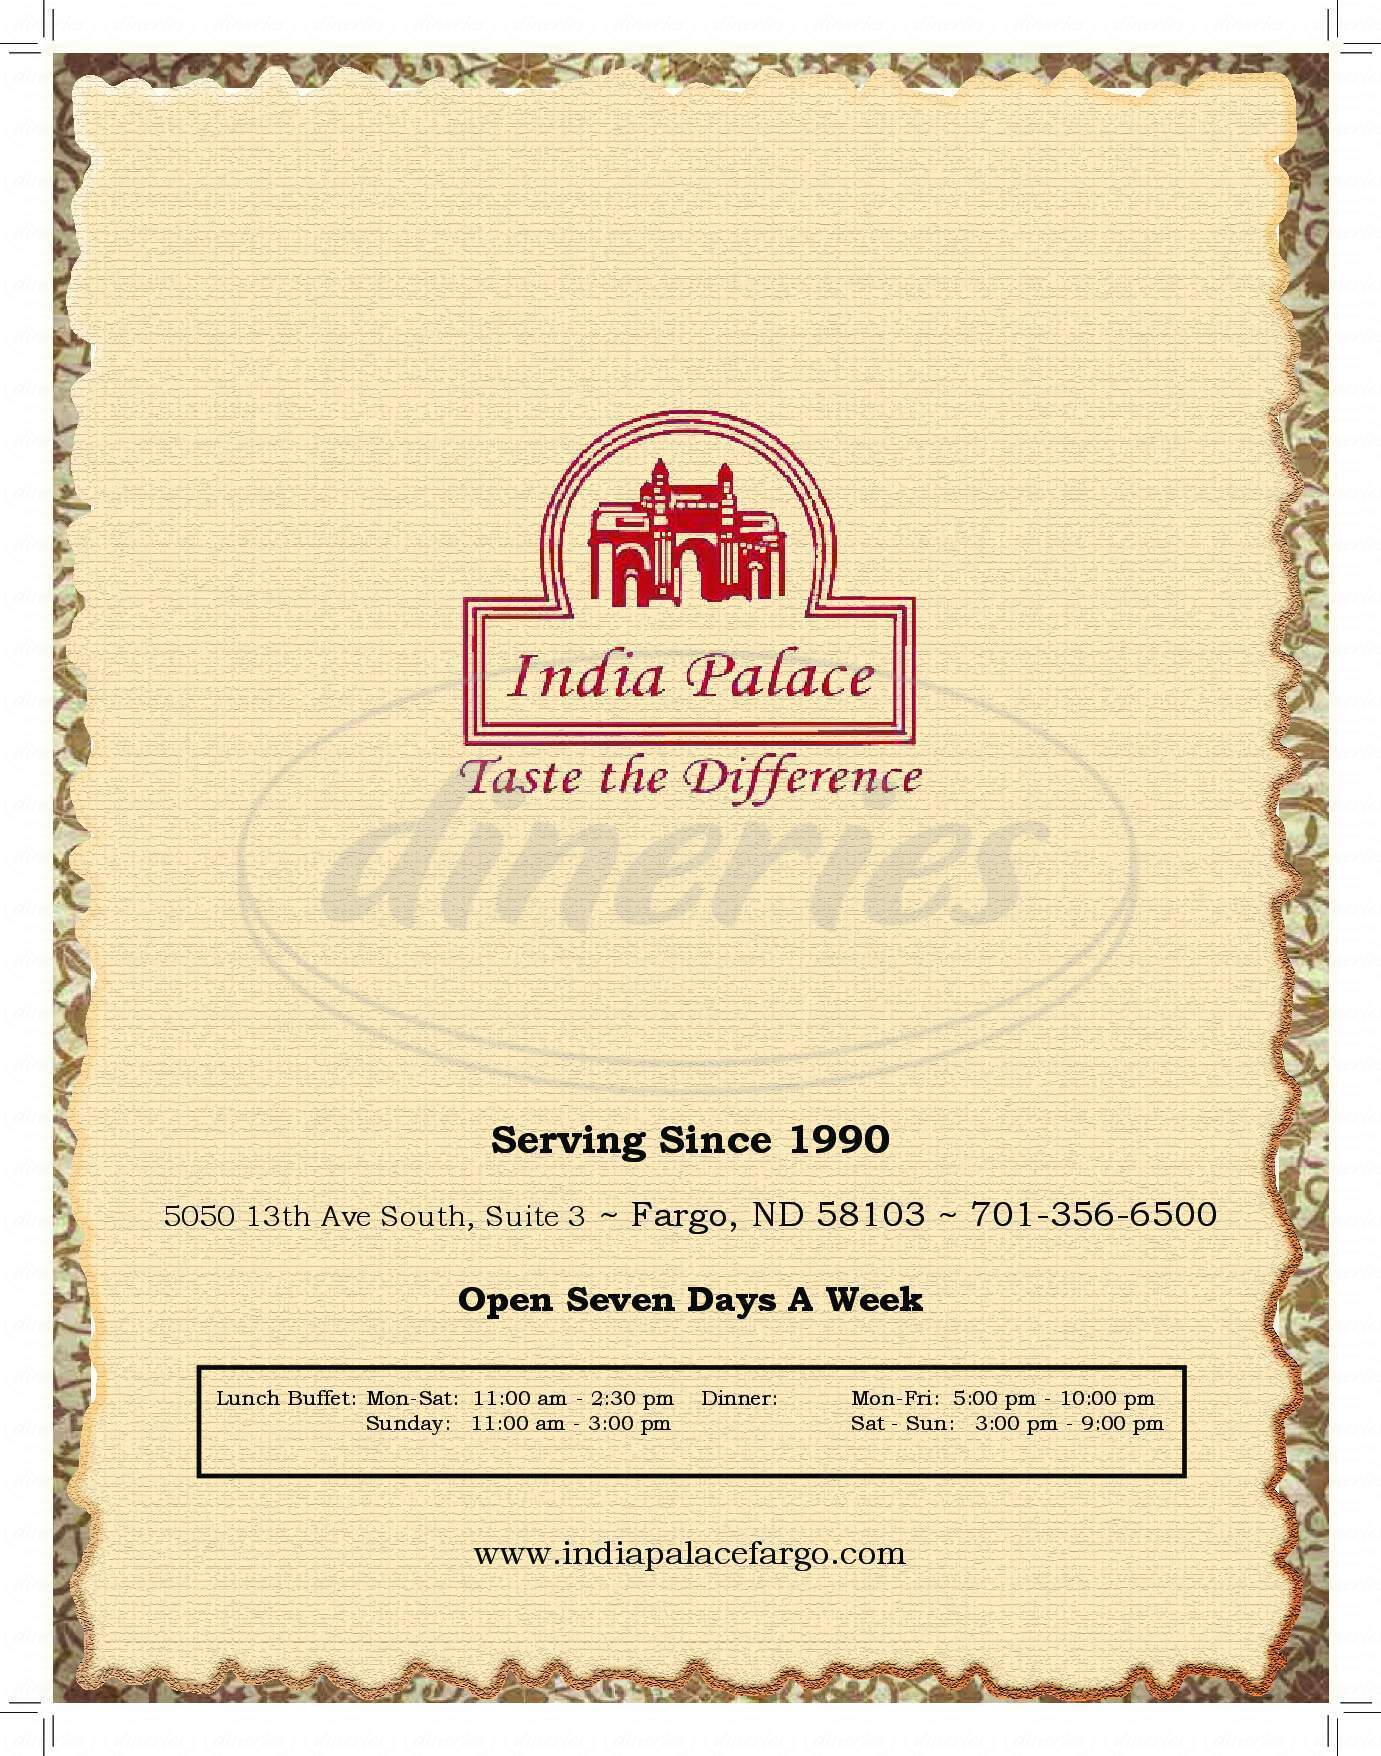 menu for India Palace